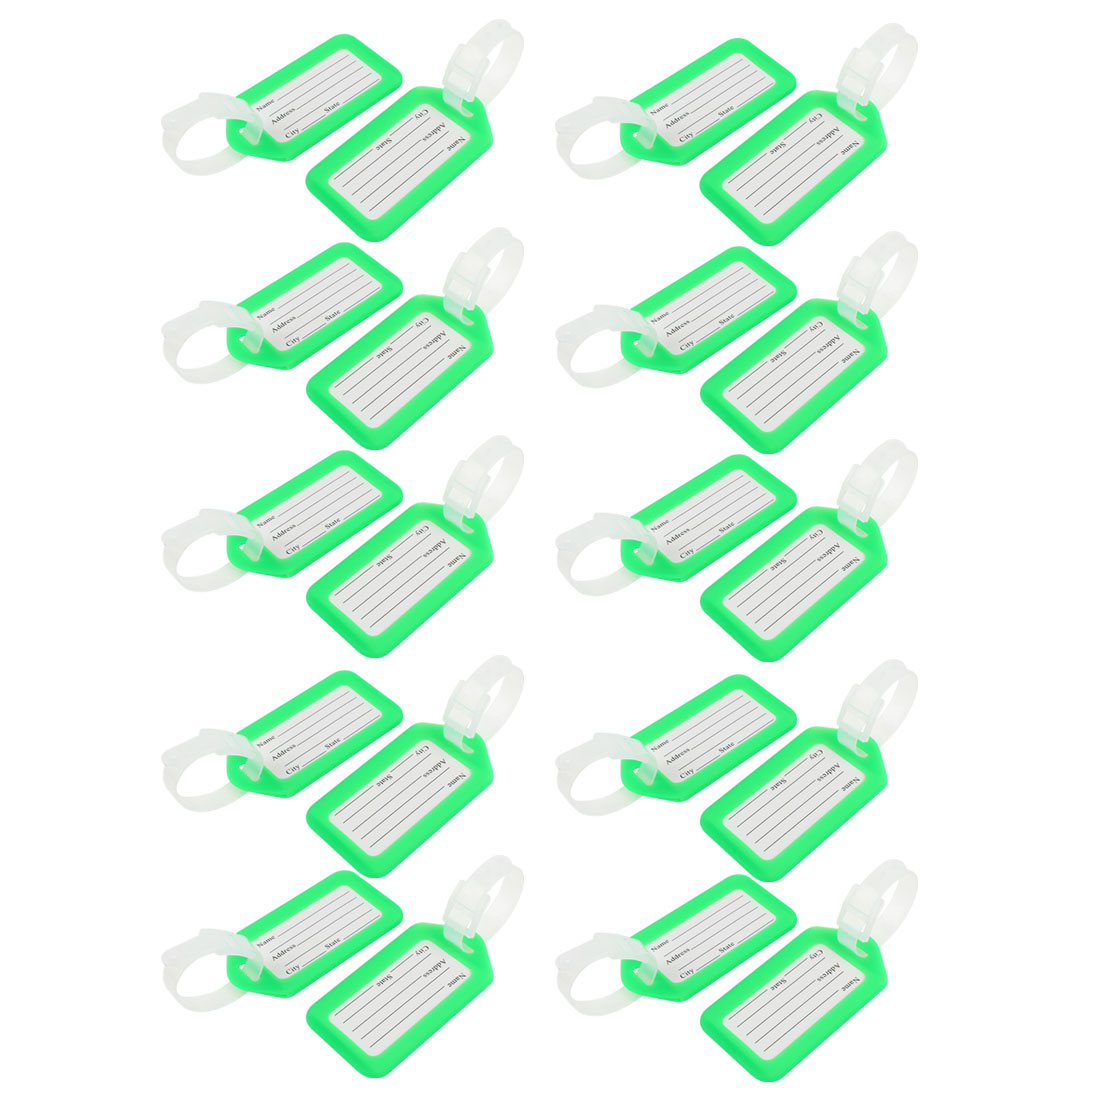 Green White Rectangle Design Plastic Suitcase Name Label Luggage Tag 20 Pcs - image 1 of 1